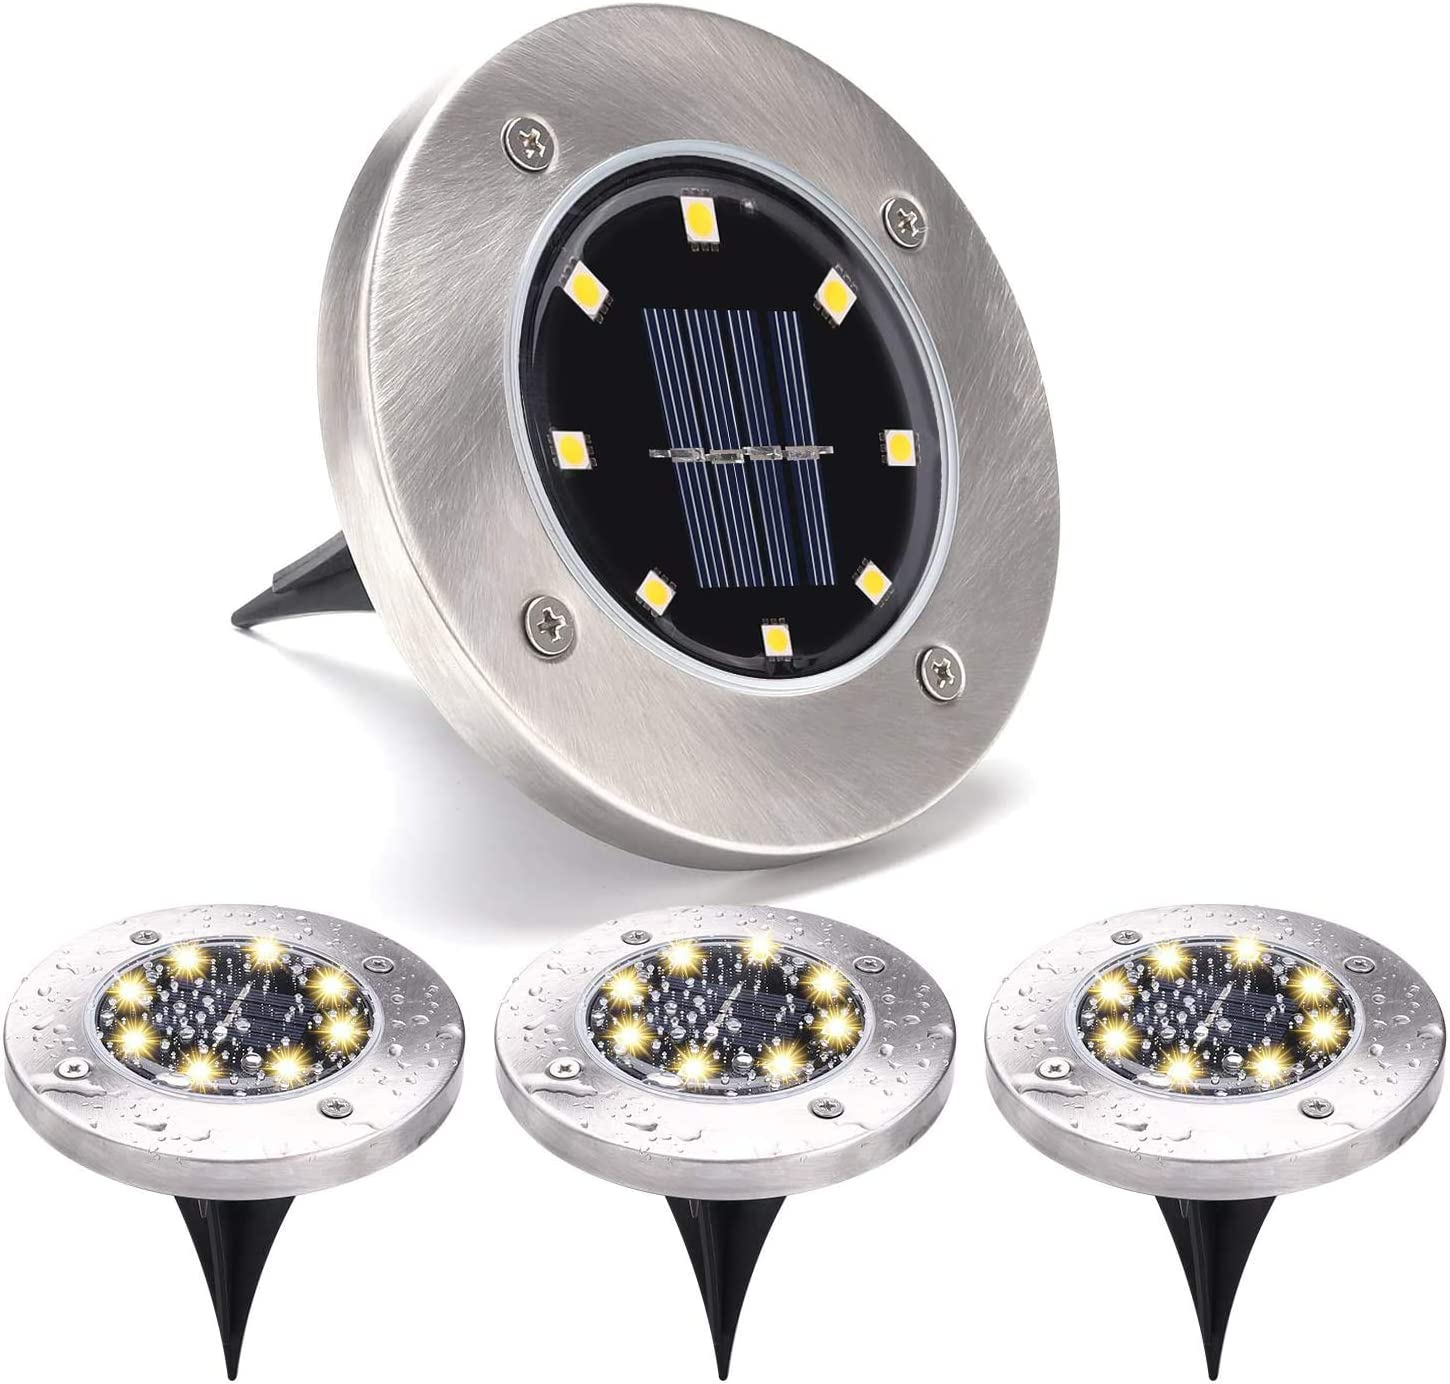 Solar Lights for Landscape Outdoor Garden, LEFYR 4 Pack 8 LED Solar Ground Lights Bright IP65 Waterproof Backyard Landscape Lighting Solar Powered Disk Natural Spotlight for Lawn Pathway Yard Driveway